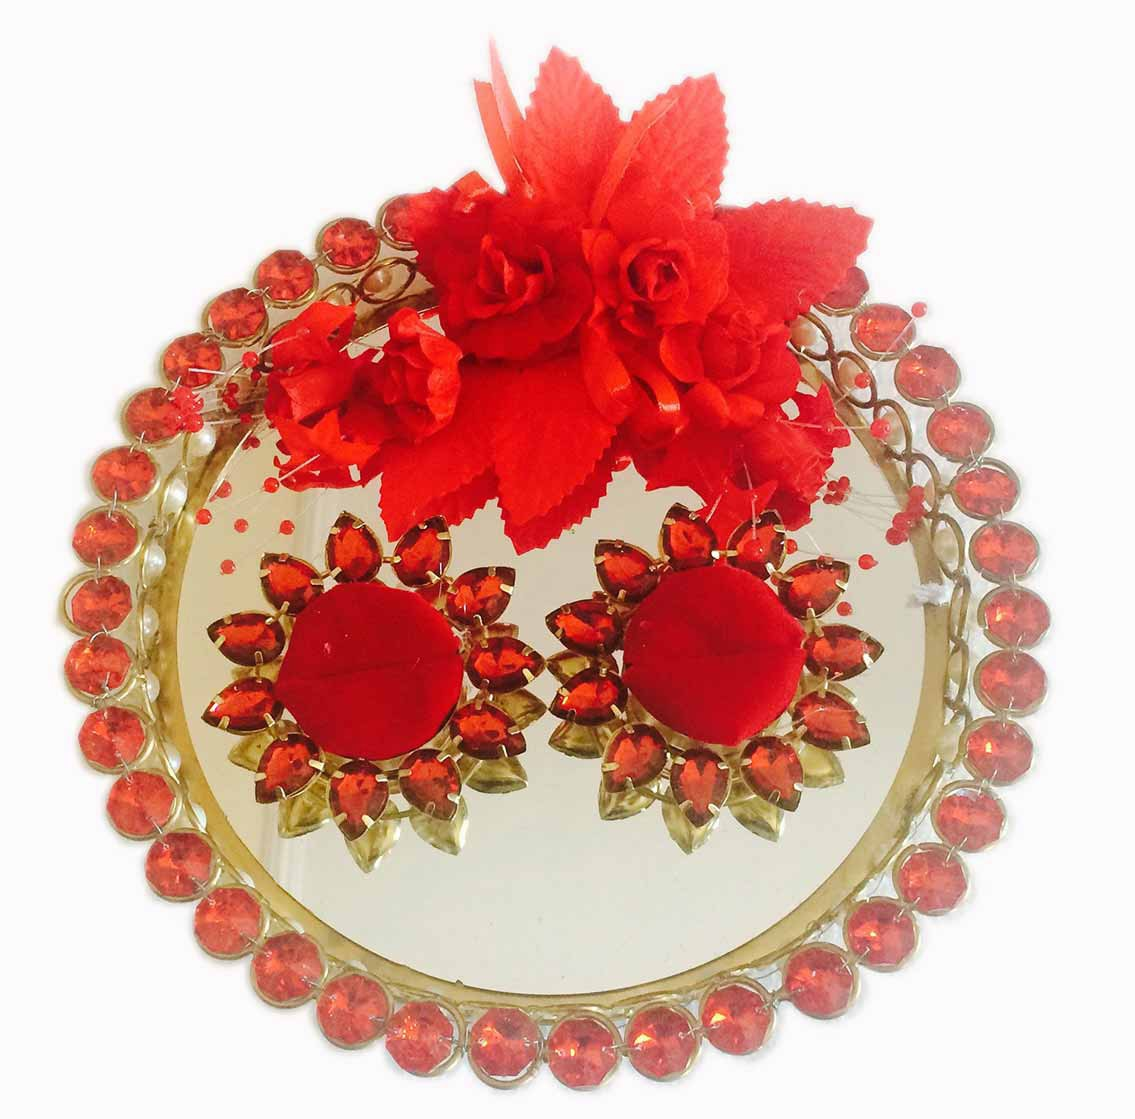 """Platter Size""""8″ Diameter approx. Colour: Red & Gold Material: Metal, Glass ,Fabric & Plastic Purpose: Wedding/Engagement Ring display . Note: Image shown above is Indicative only, Color may differ from the picture shown (Features will remain same or More)"""